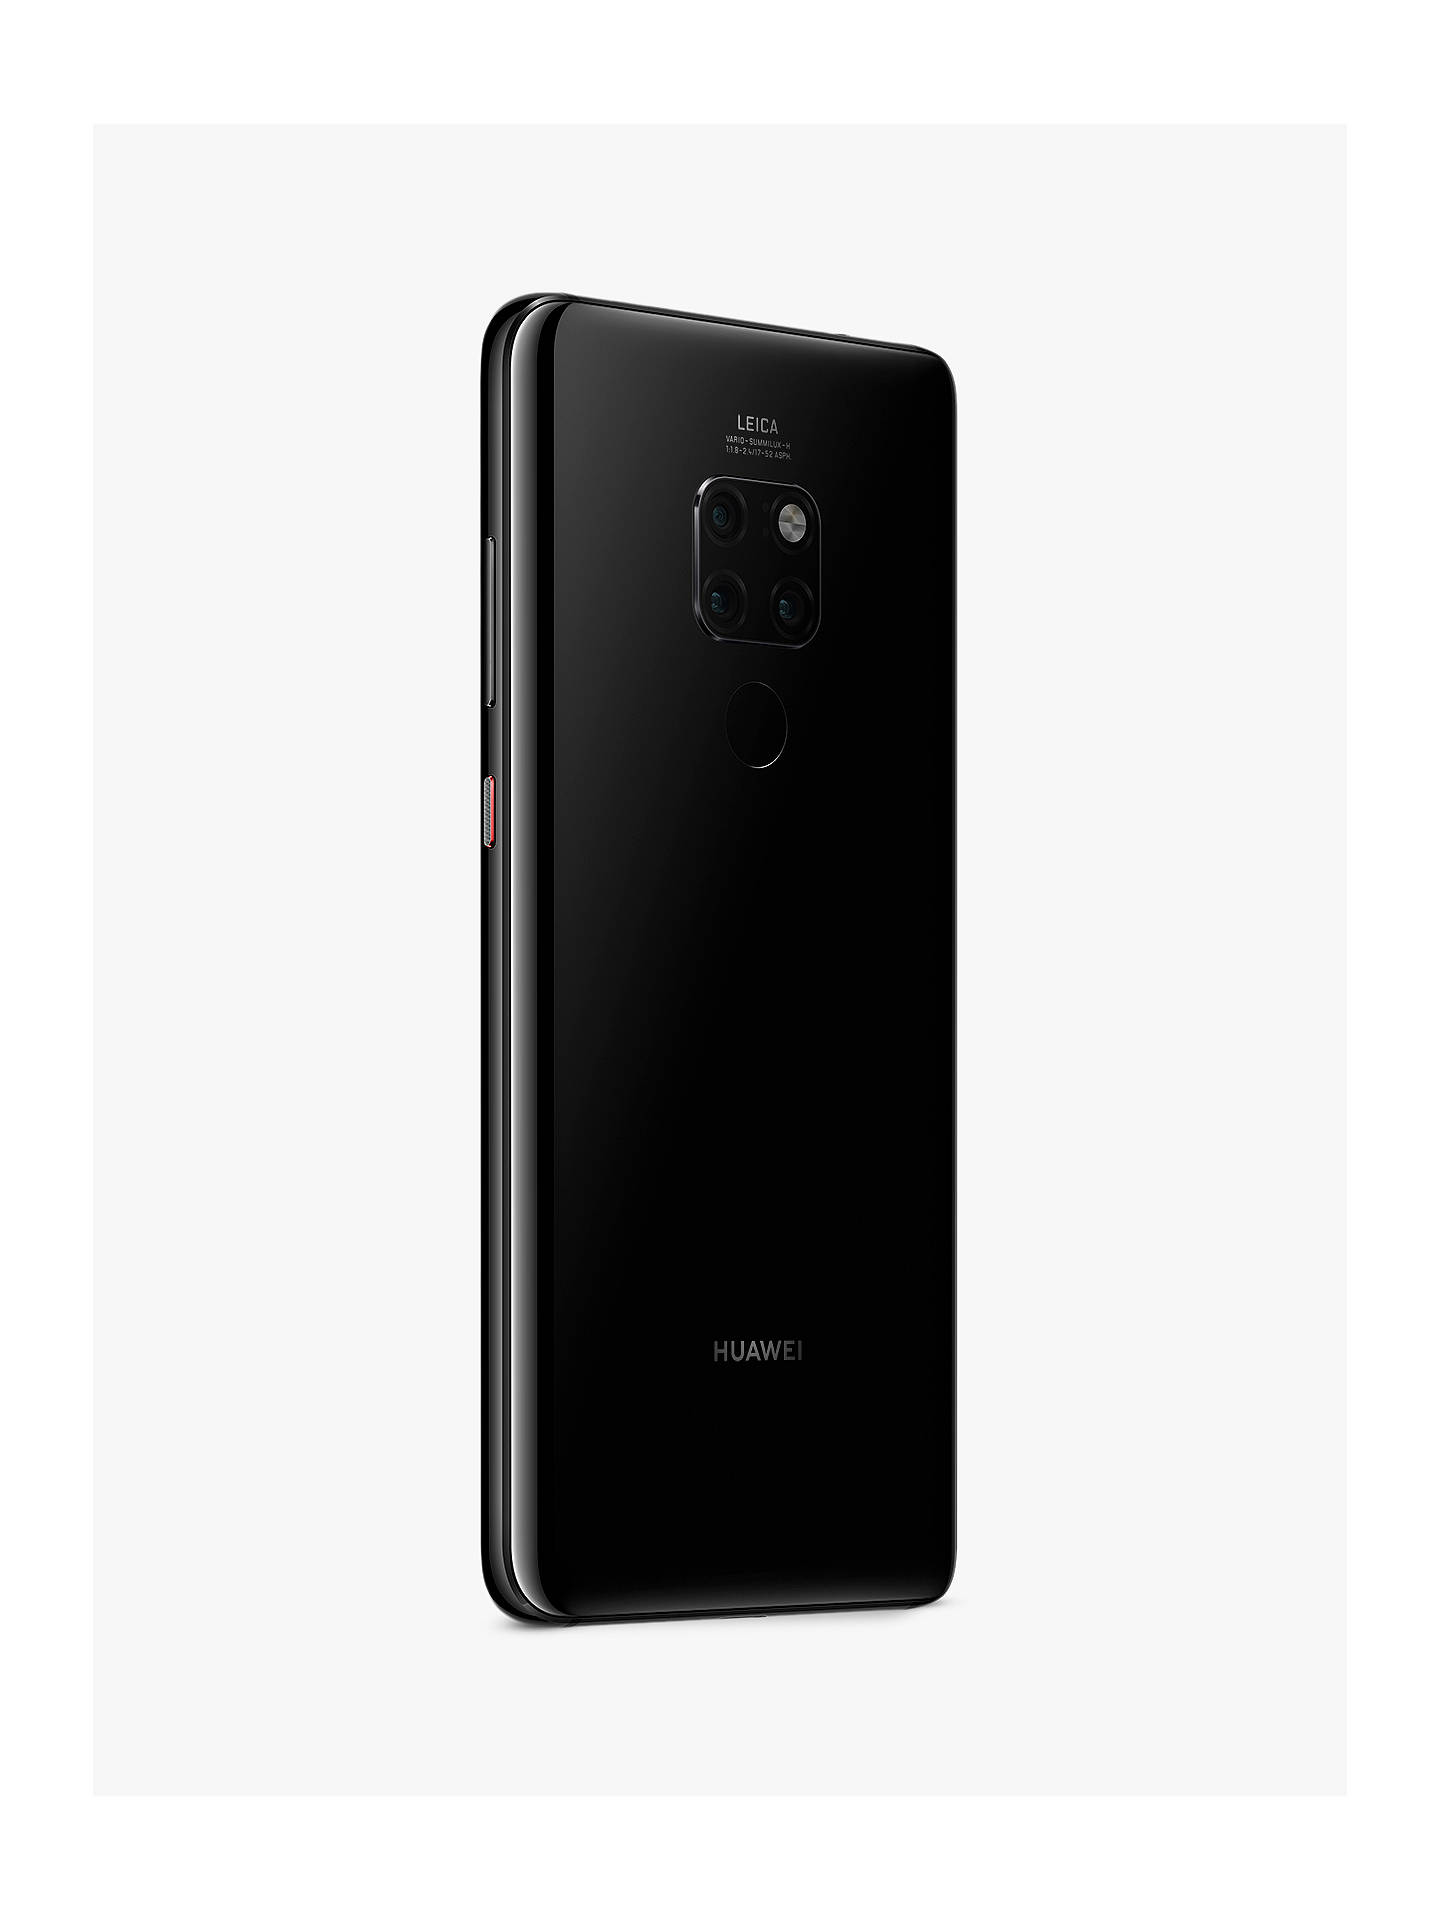 "Buy Huawei Mate 20 Smartphone, Android, 6.53"", 4G LTE, SIM Free, 128GB, Black Online at johnlewis.com"